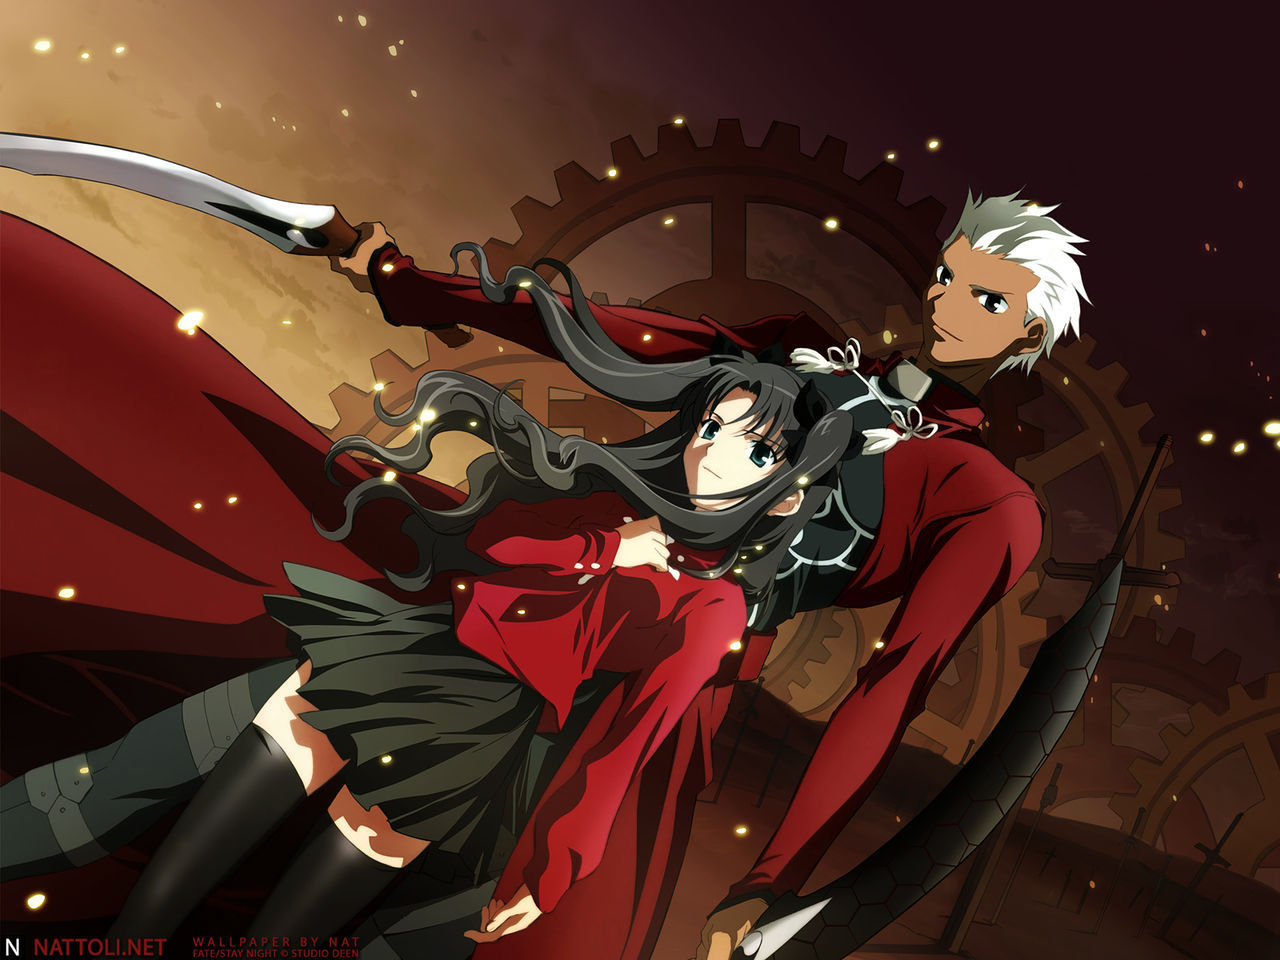 Archer And Rin Fate Stay Night Wallpaper 1280x960 Full HD Wallpapers 1280x960